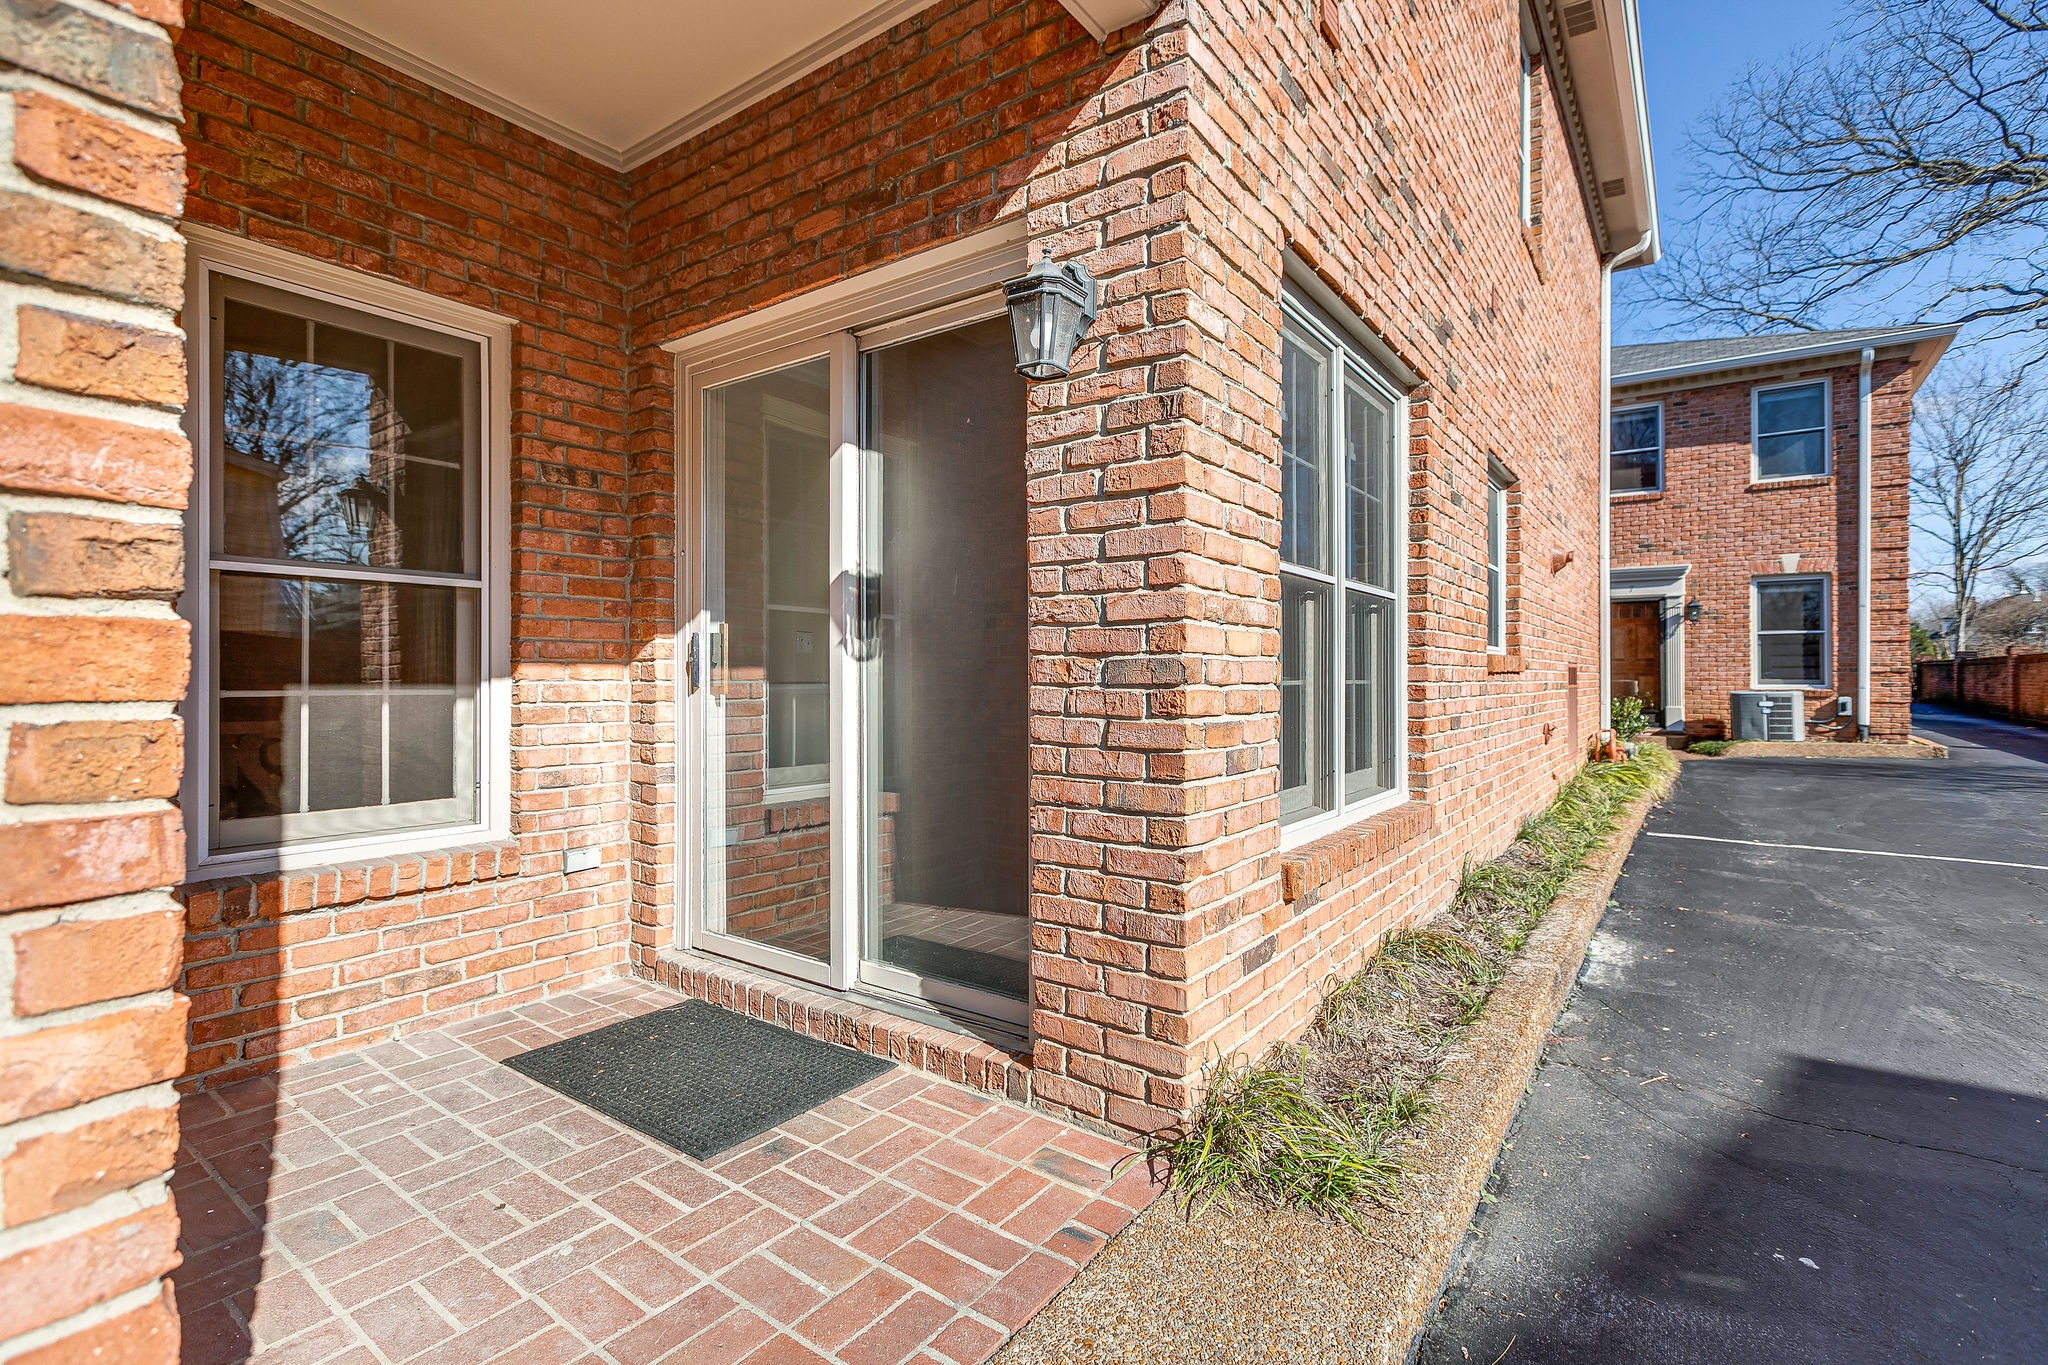 Heritage Chase Condos For Sale Franklin TN 37064